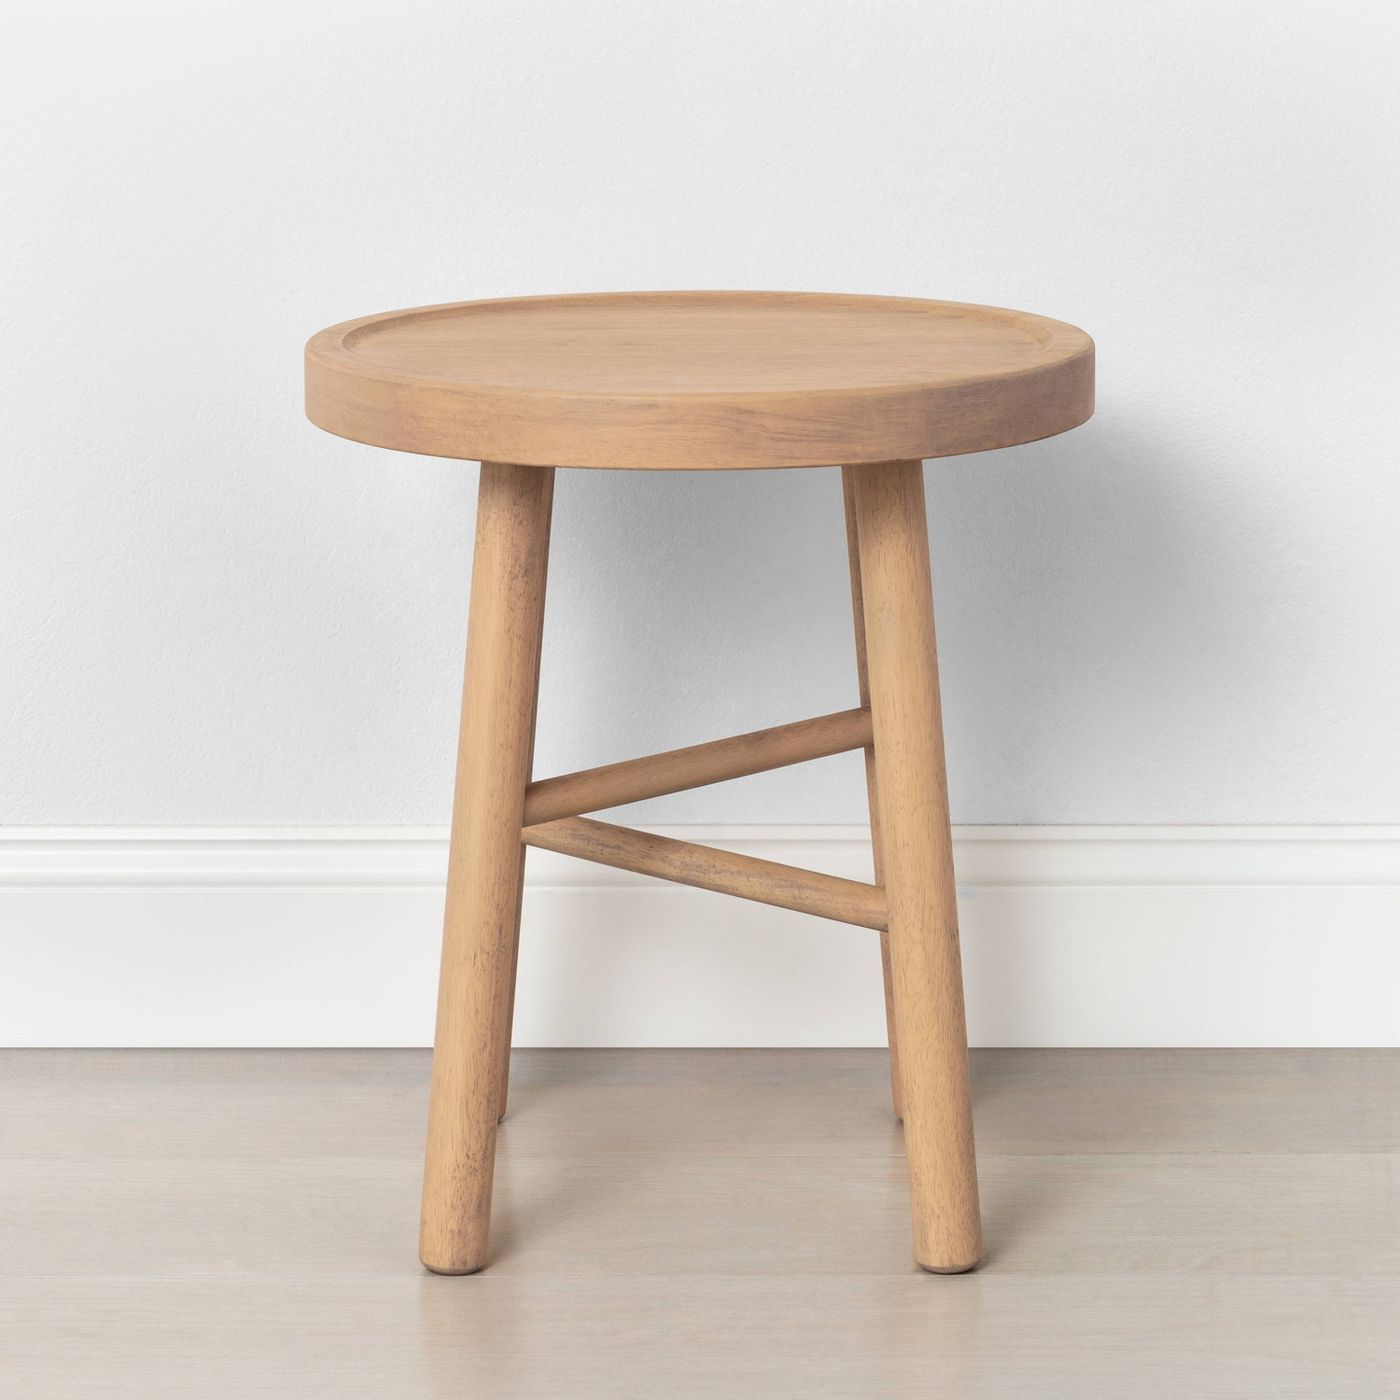 Rubberwood accent stool from Target